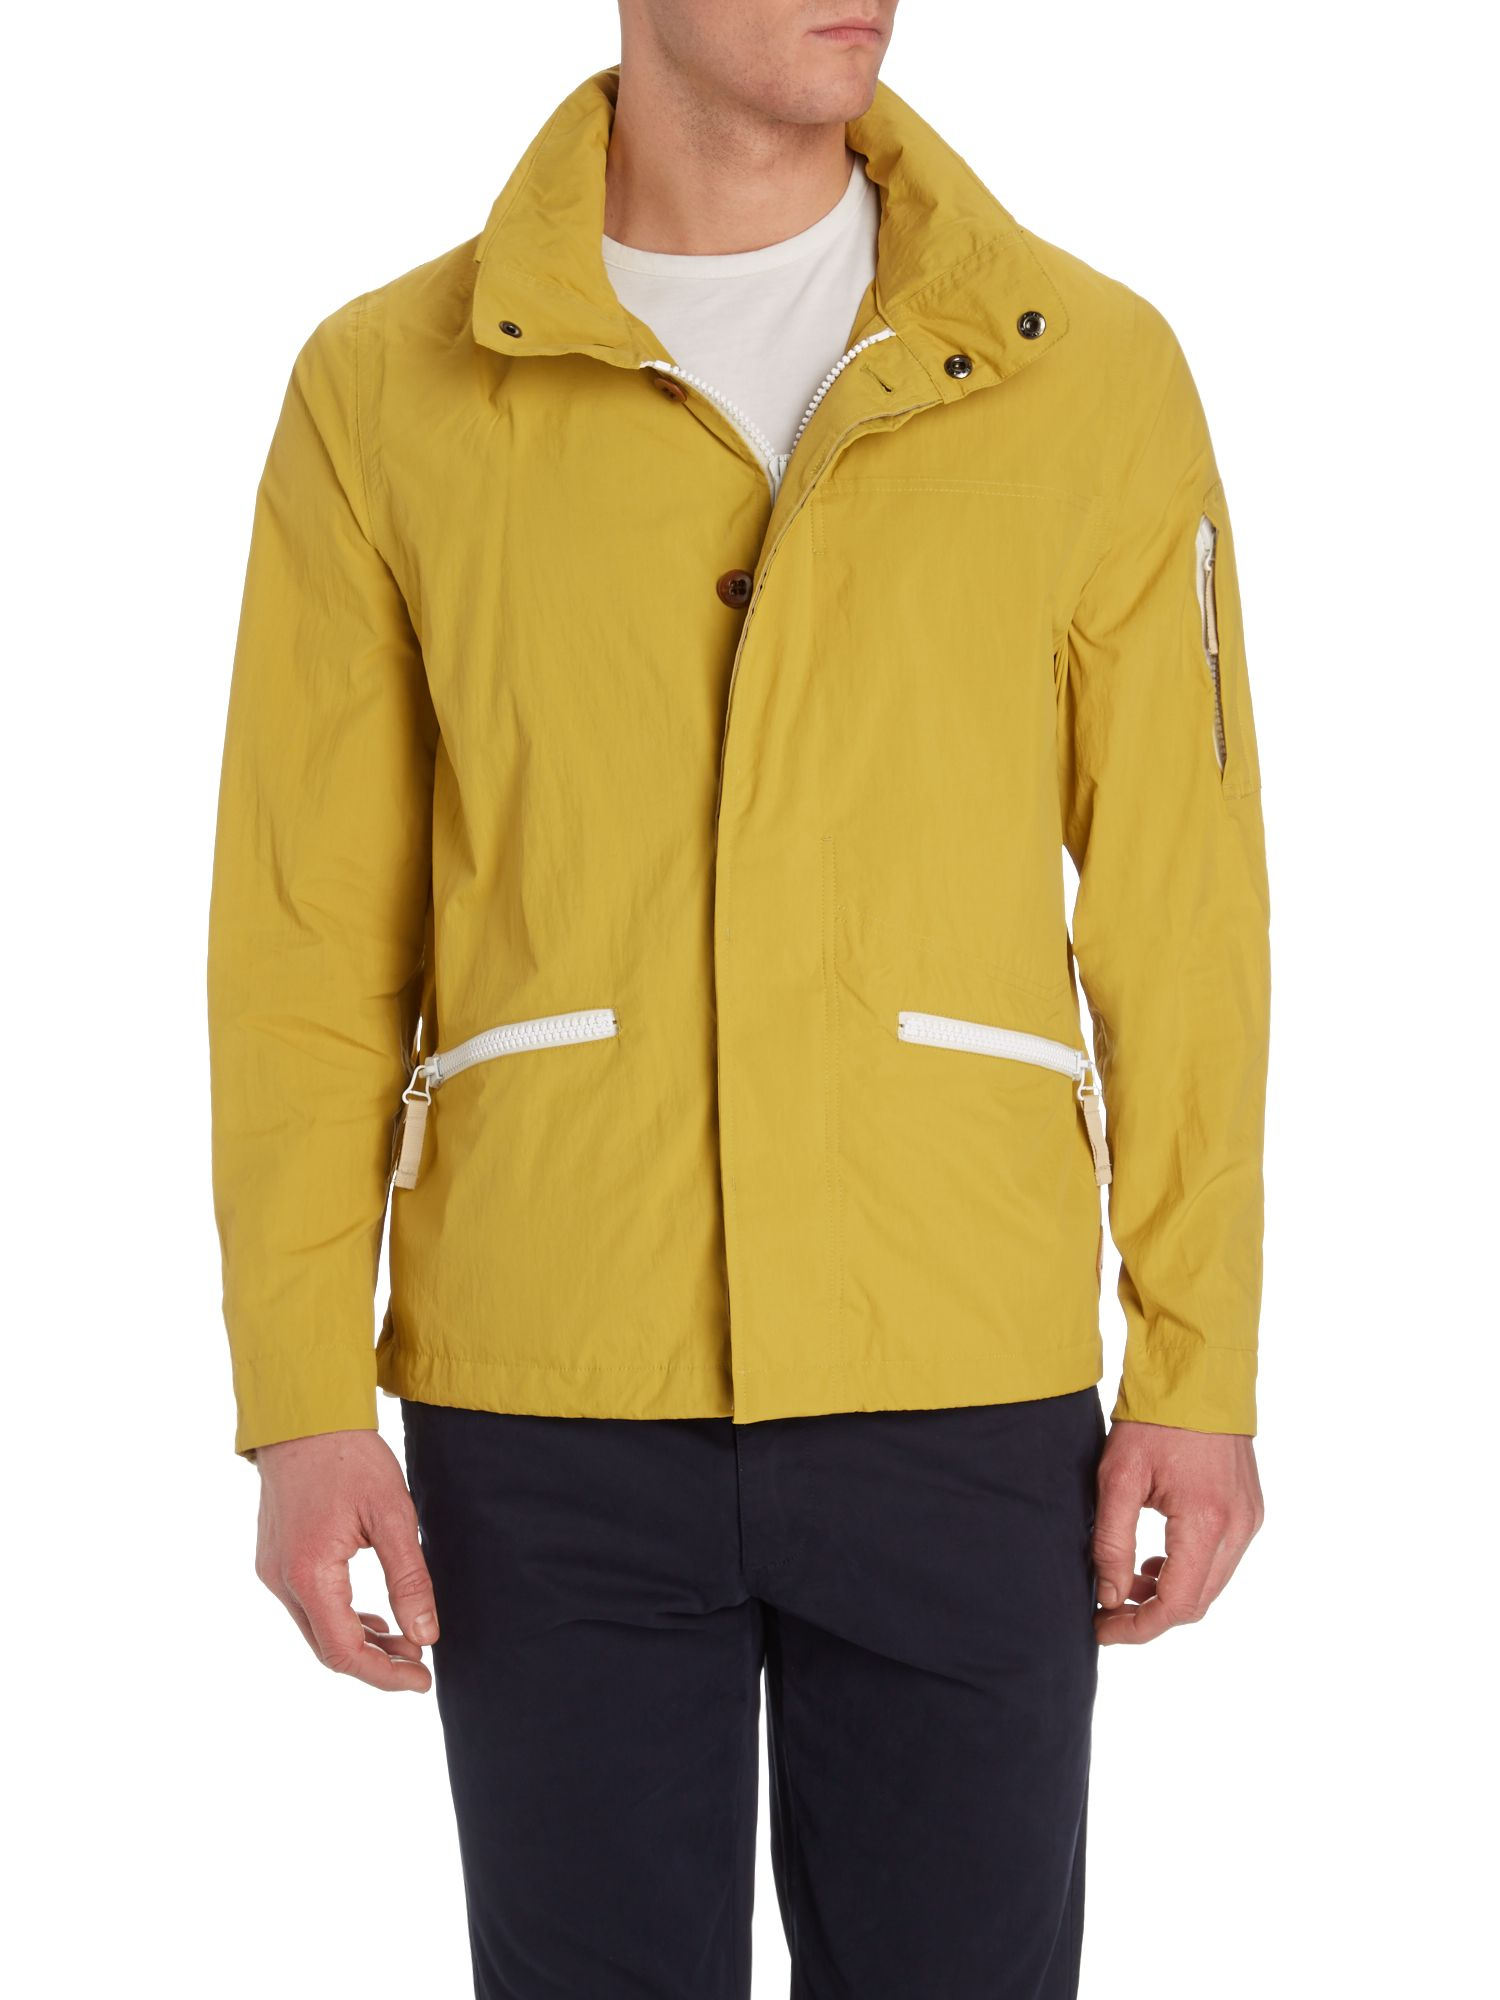 Zip up waterproof jacket